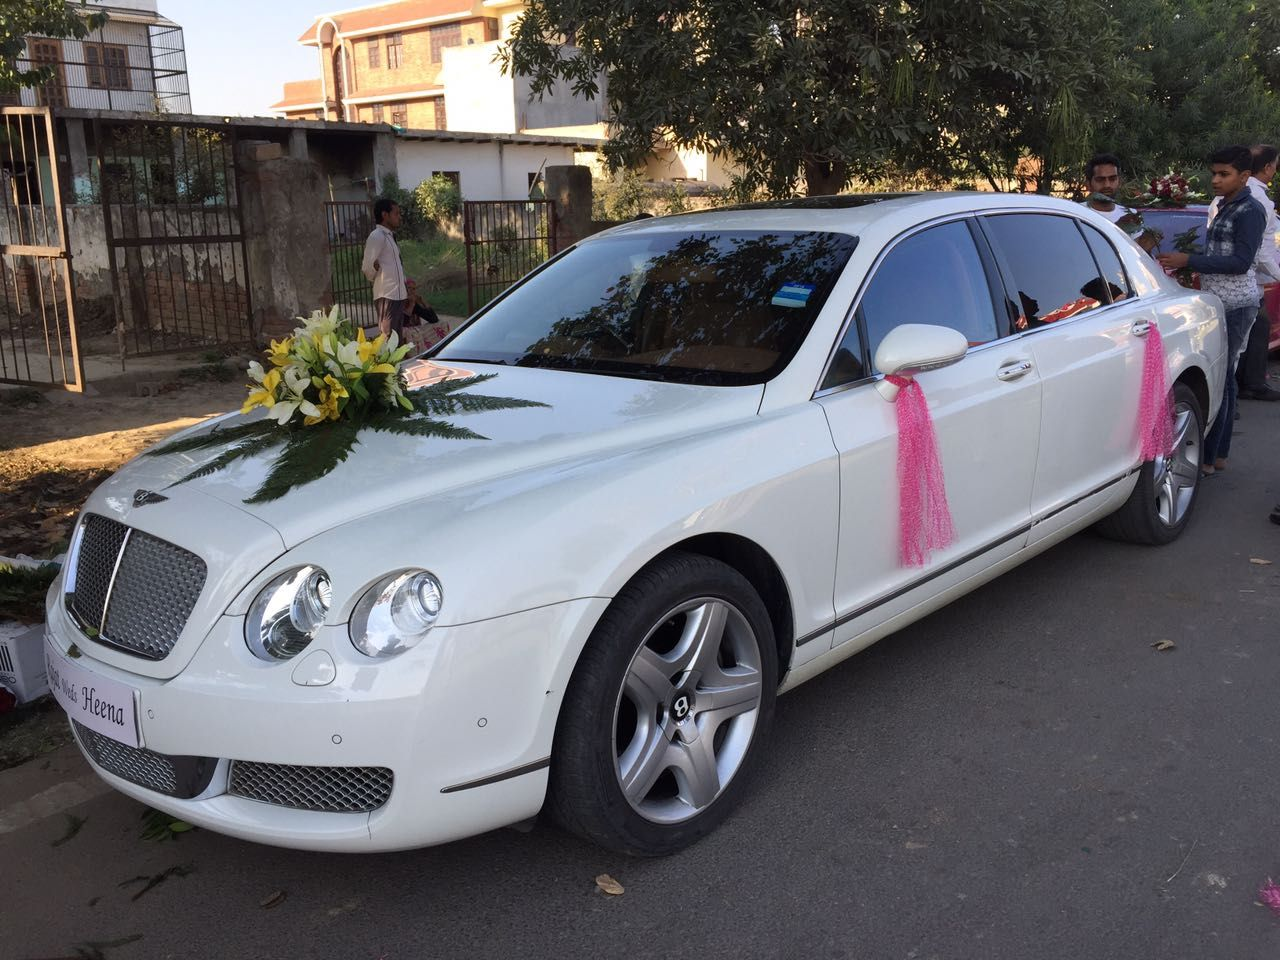 Fresh Ideas For Your Wedding With Wedding Car Delhi Book A Self Drive Car In Delhi Weddingcab Luxurycars Weddingcar Luxury Car Hire Car Hire Car Rental